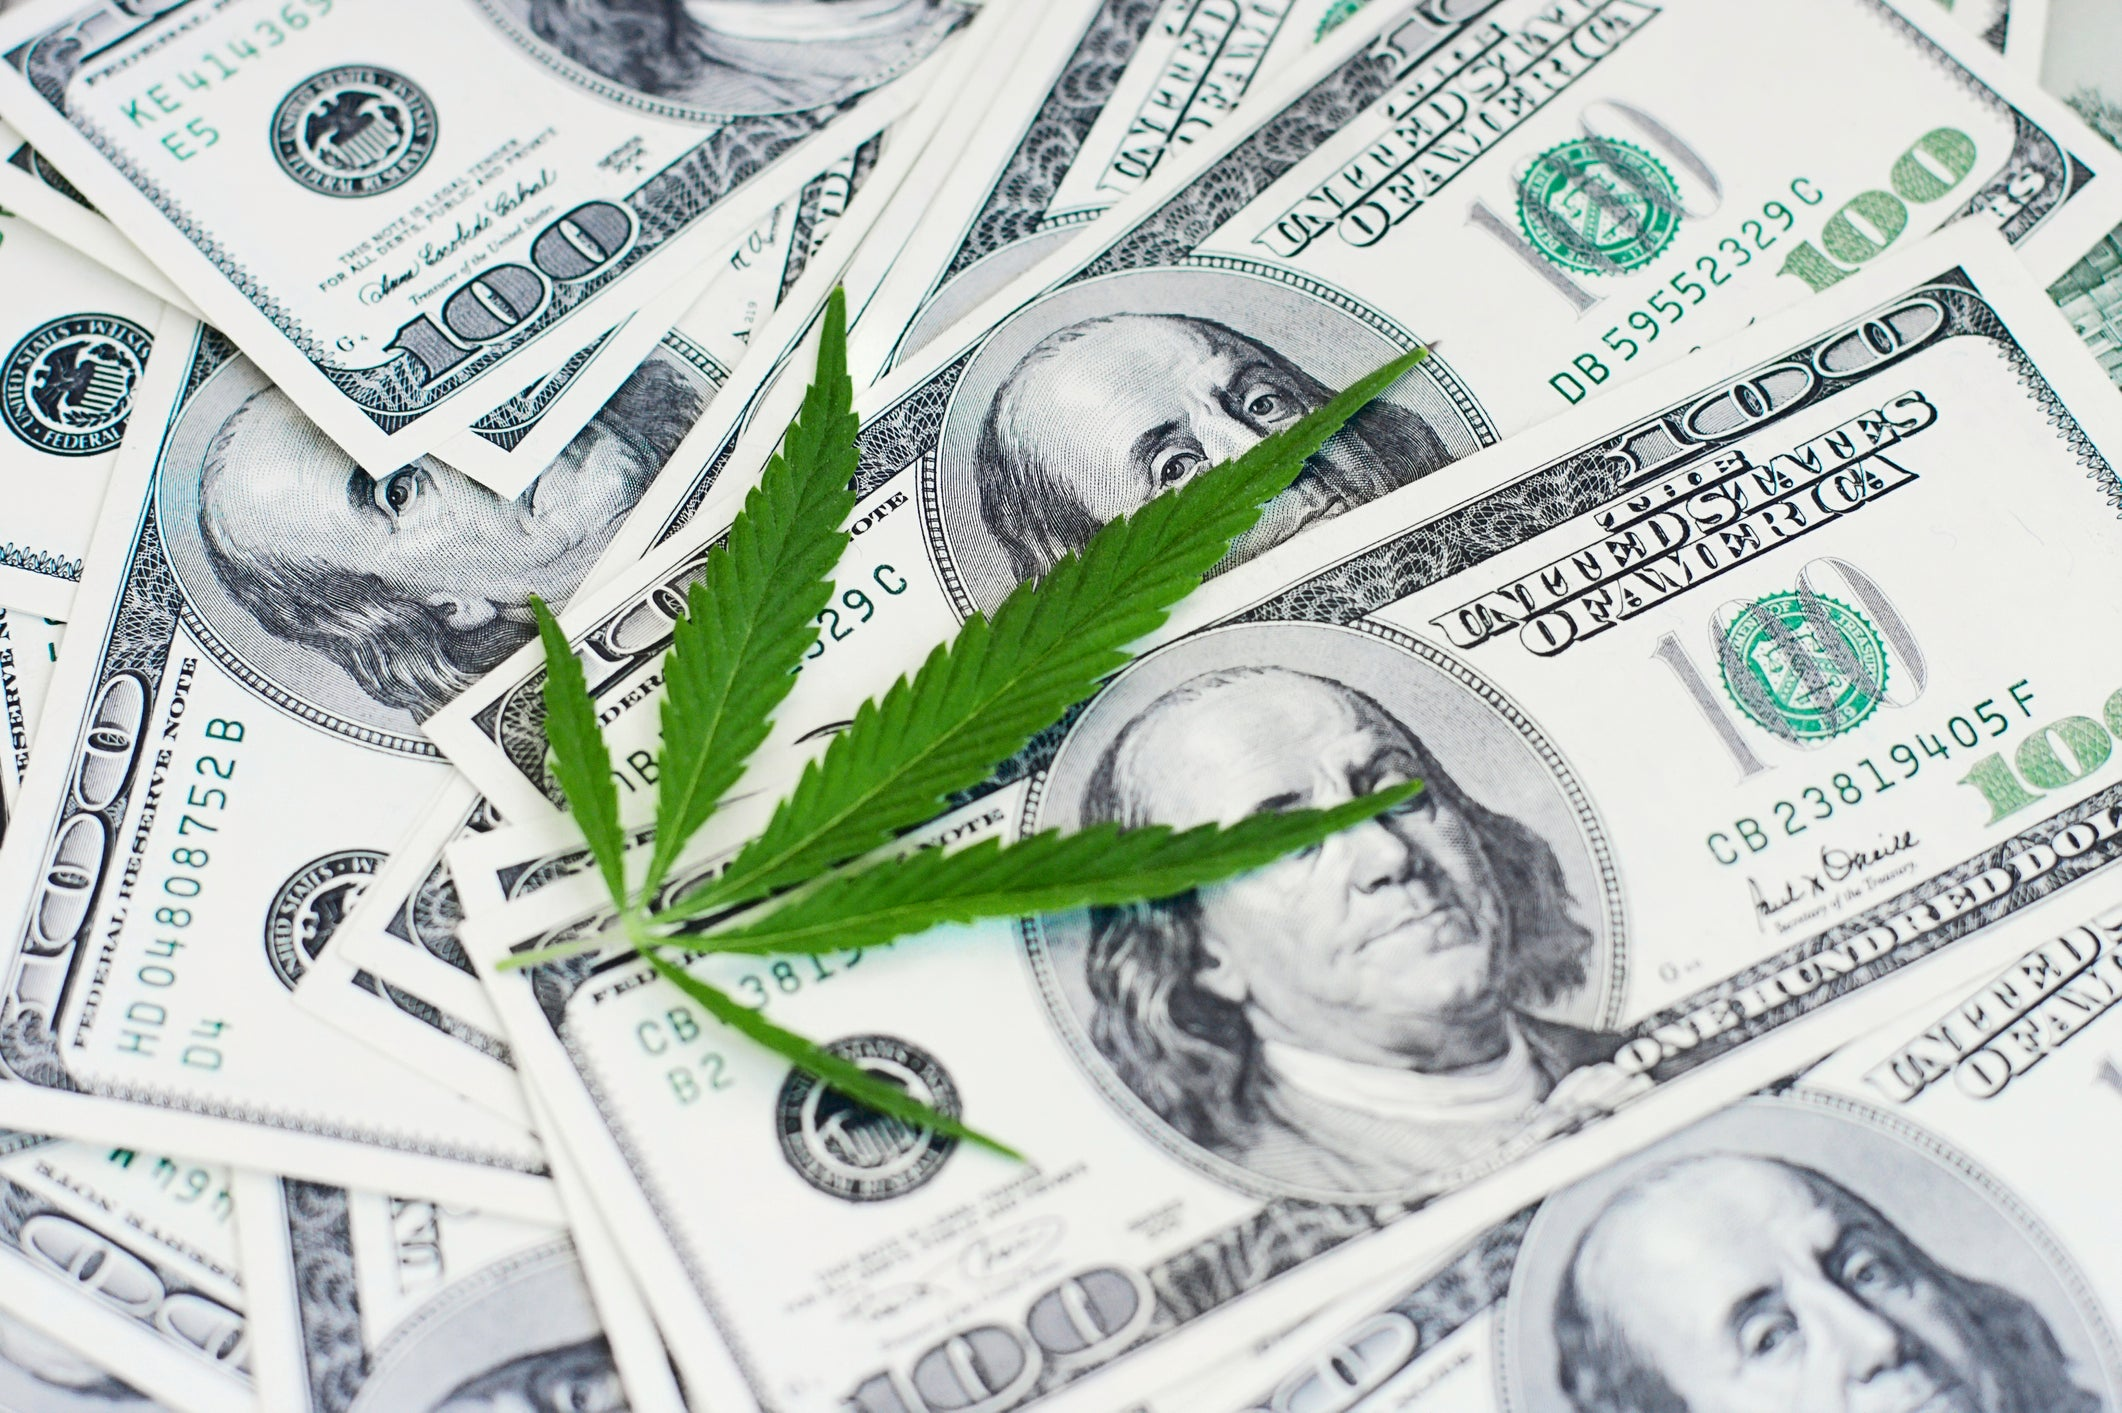 Better Cannabis Stock: Charlotte's Web vs. KushCo Holdings | The Motley Fool